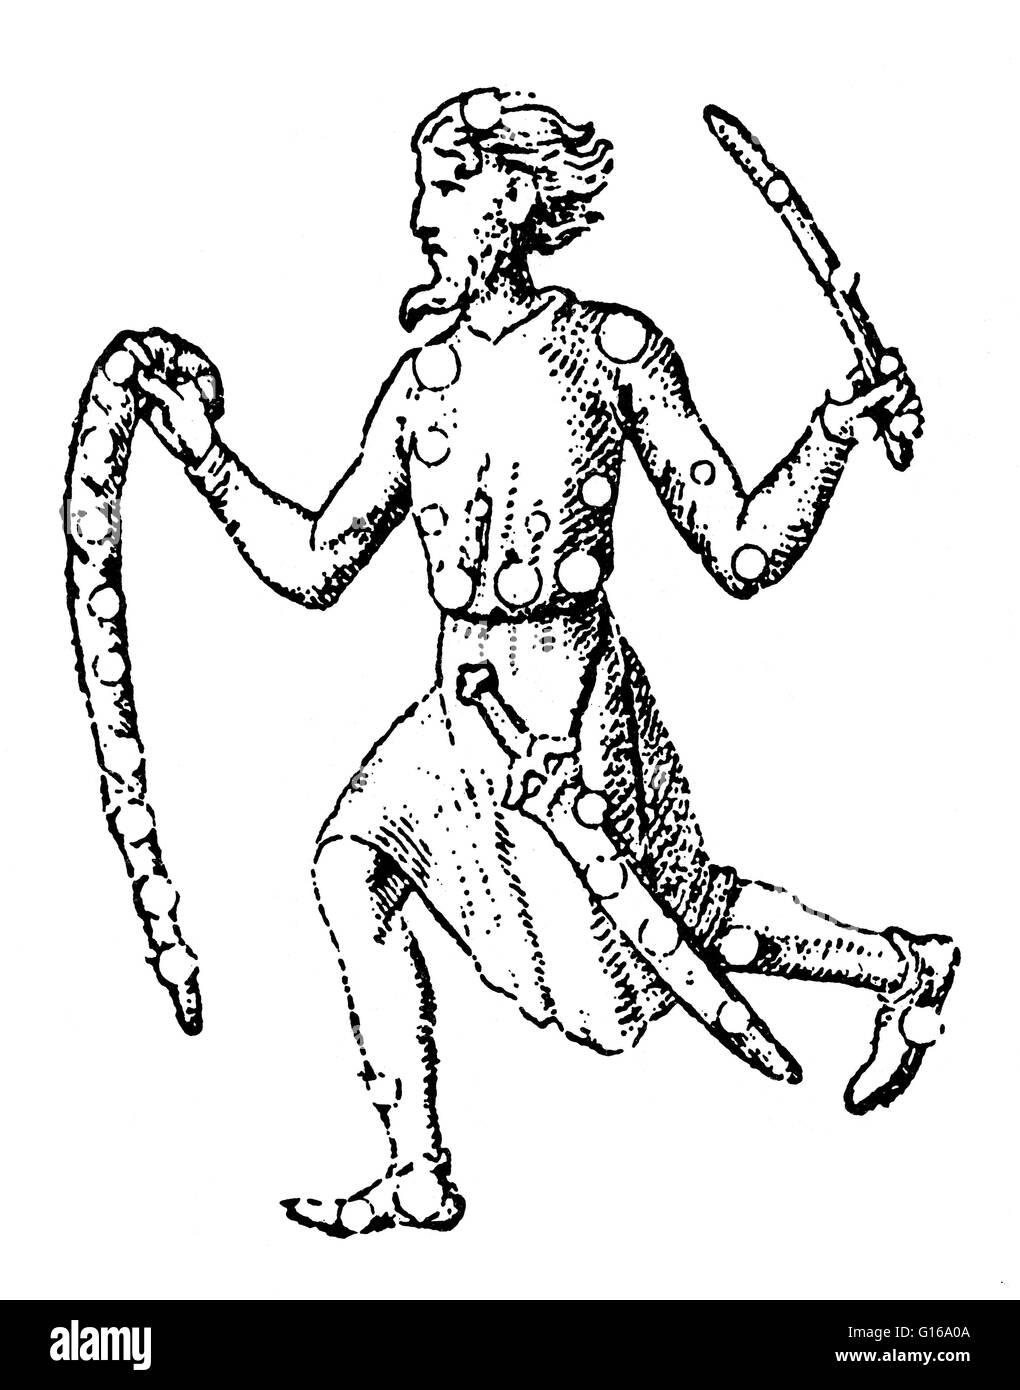 Woodcut of Orion from the Alfonsine tables, 1252. The tables provided data for computing the position of the Sun, - Stock Image